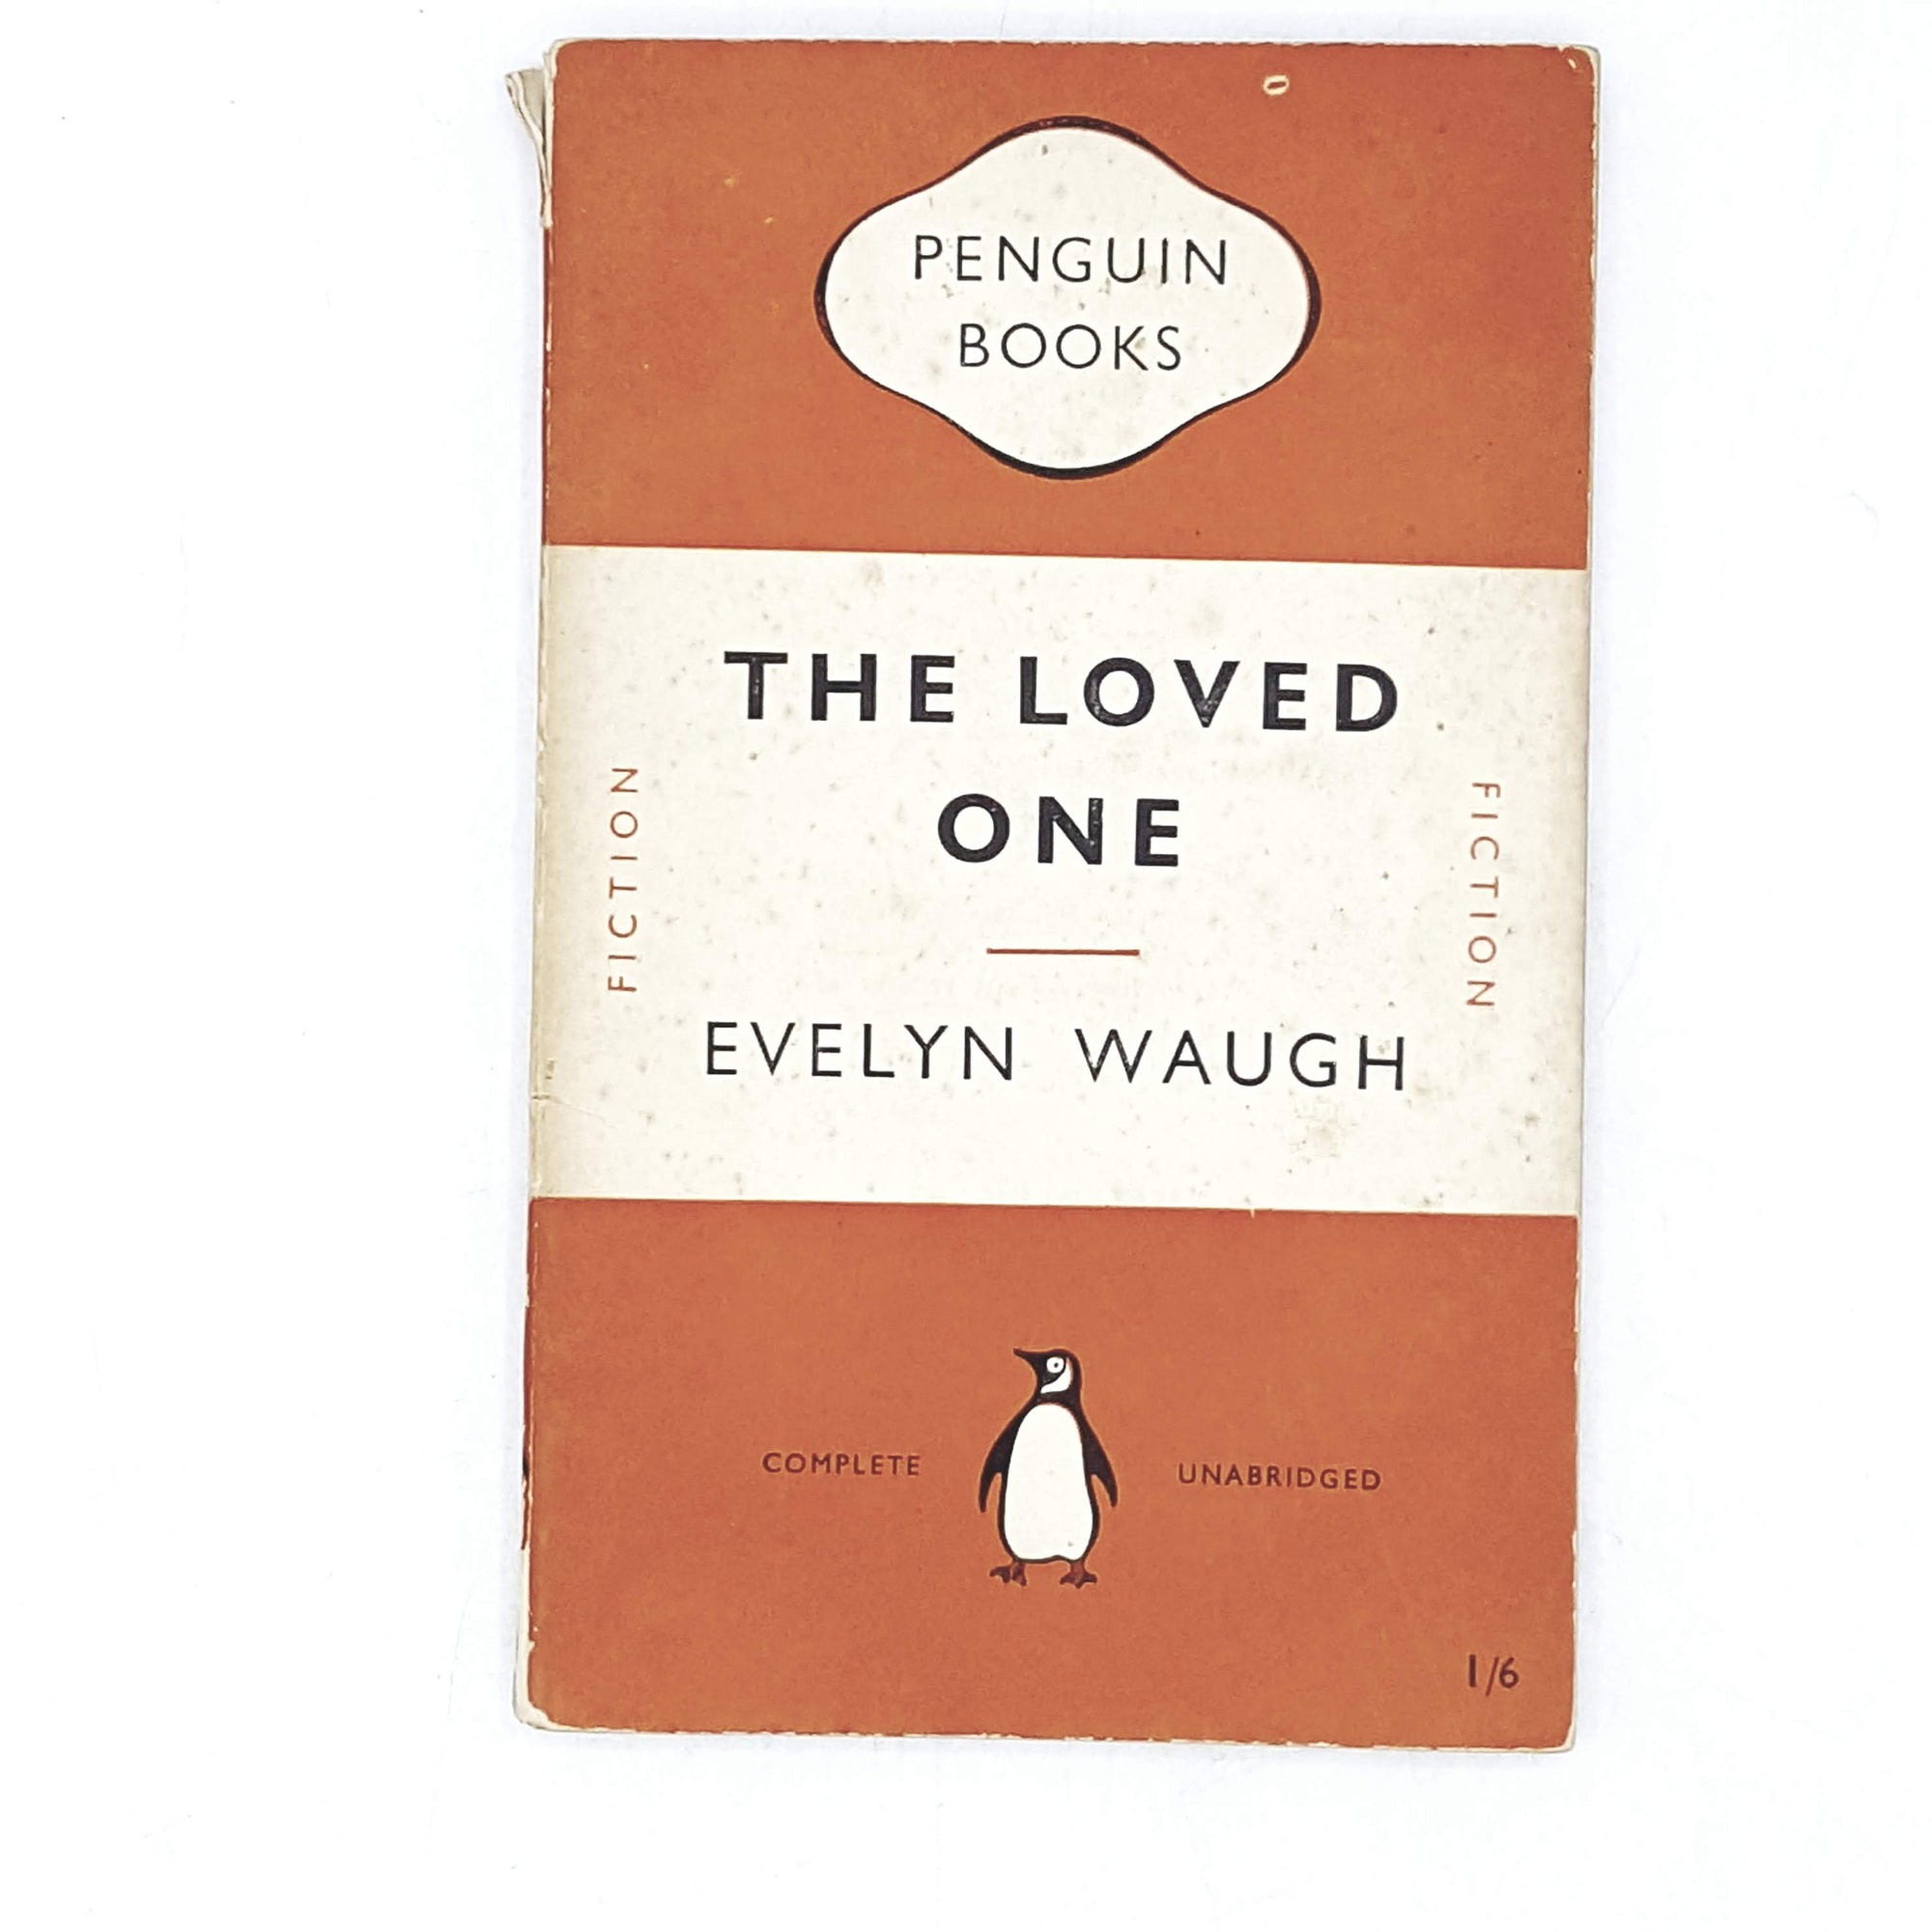 Vintage Penguin The Loved One by Evelyn Waugh 1951